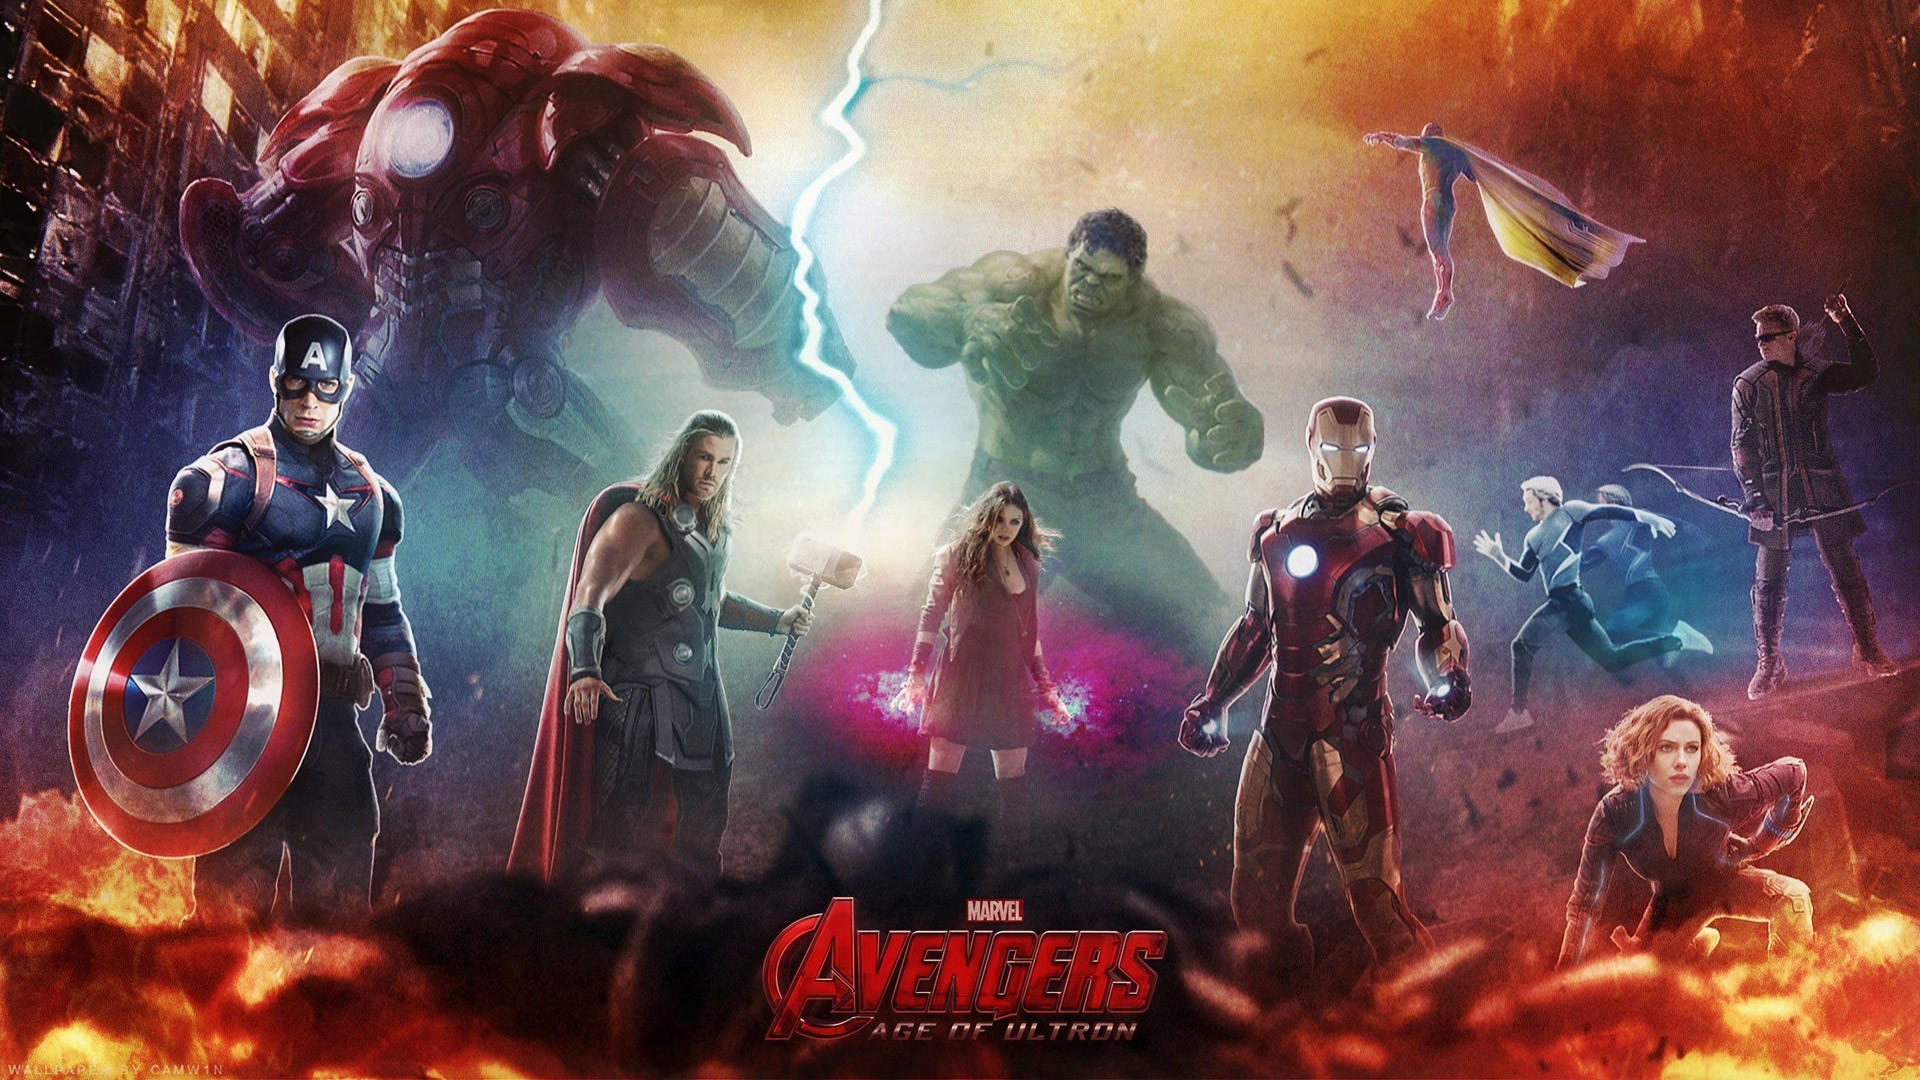 Free Wallpapers – Avengers: Age of Ultron wallpaper